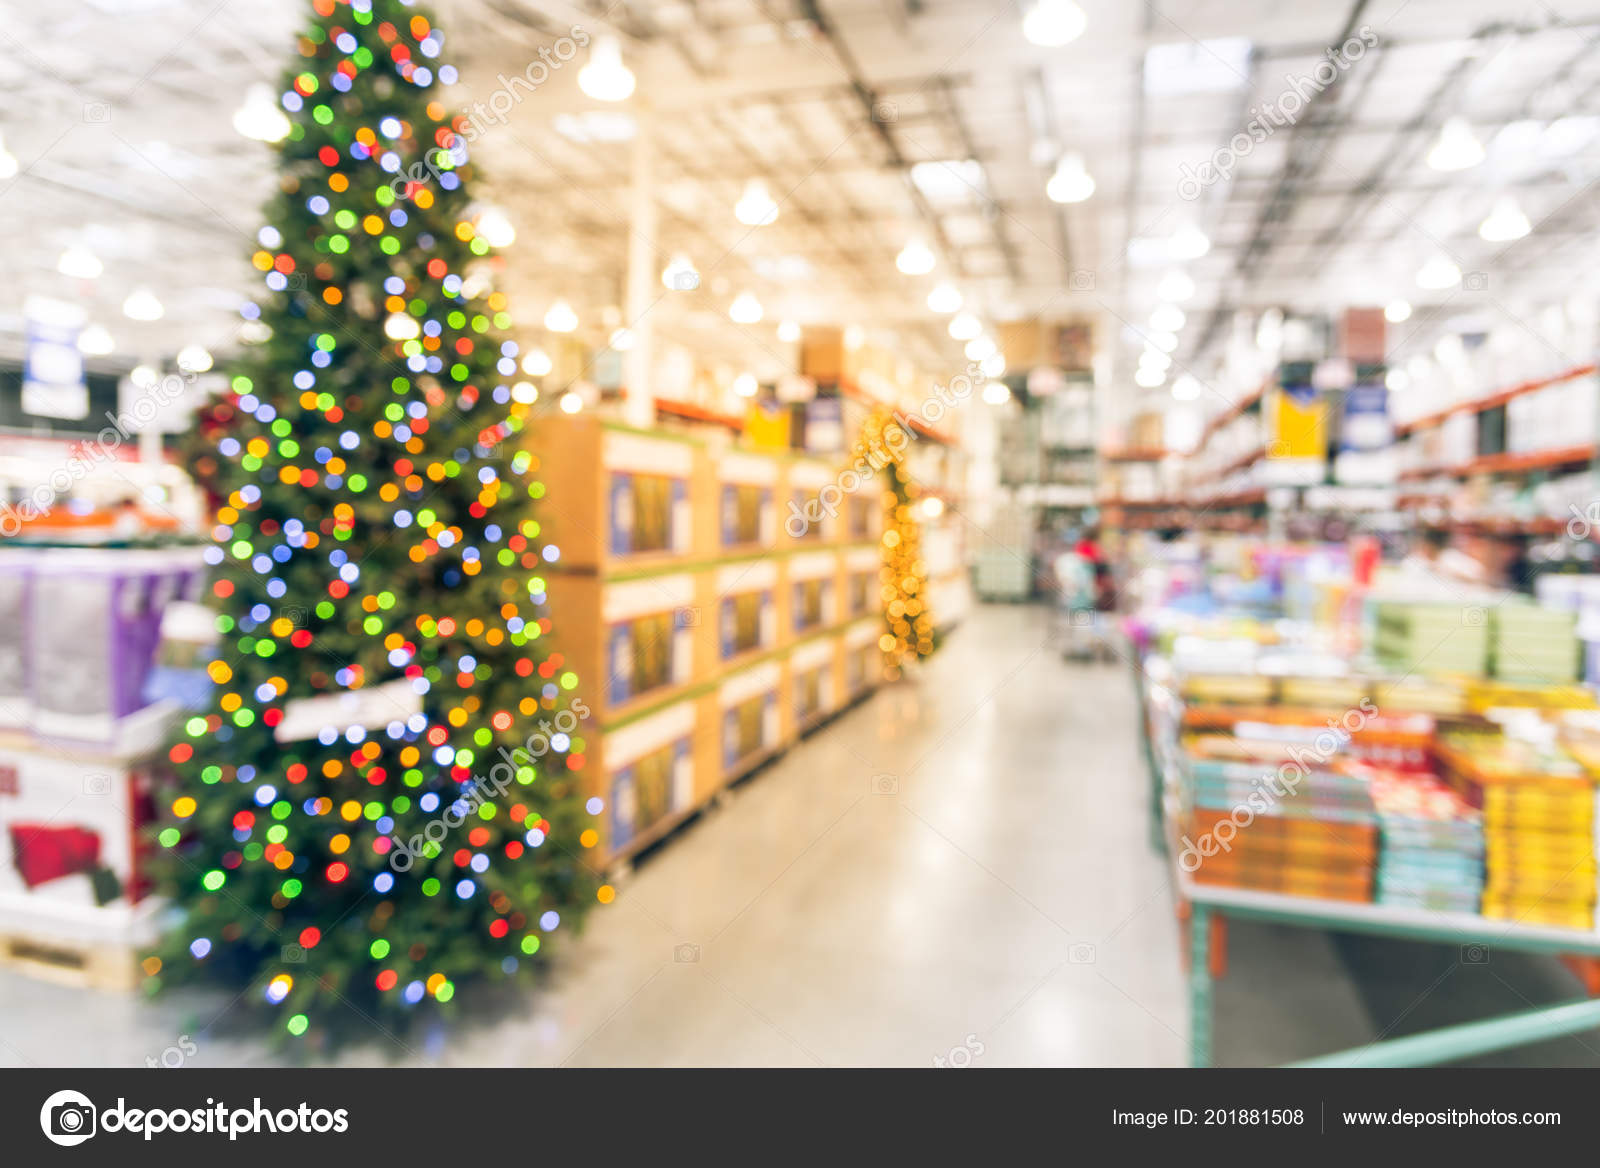 vintage blurred huge christmas tree decoration wholesale store customer shopping stock photo